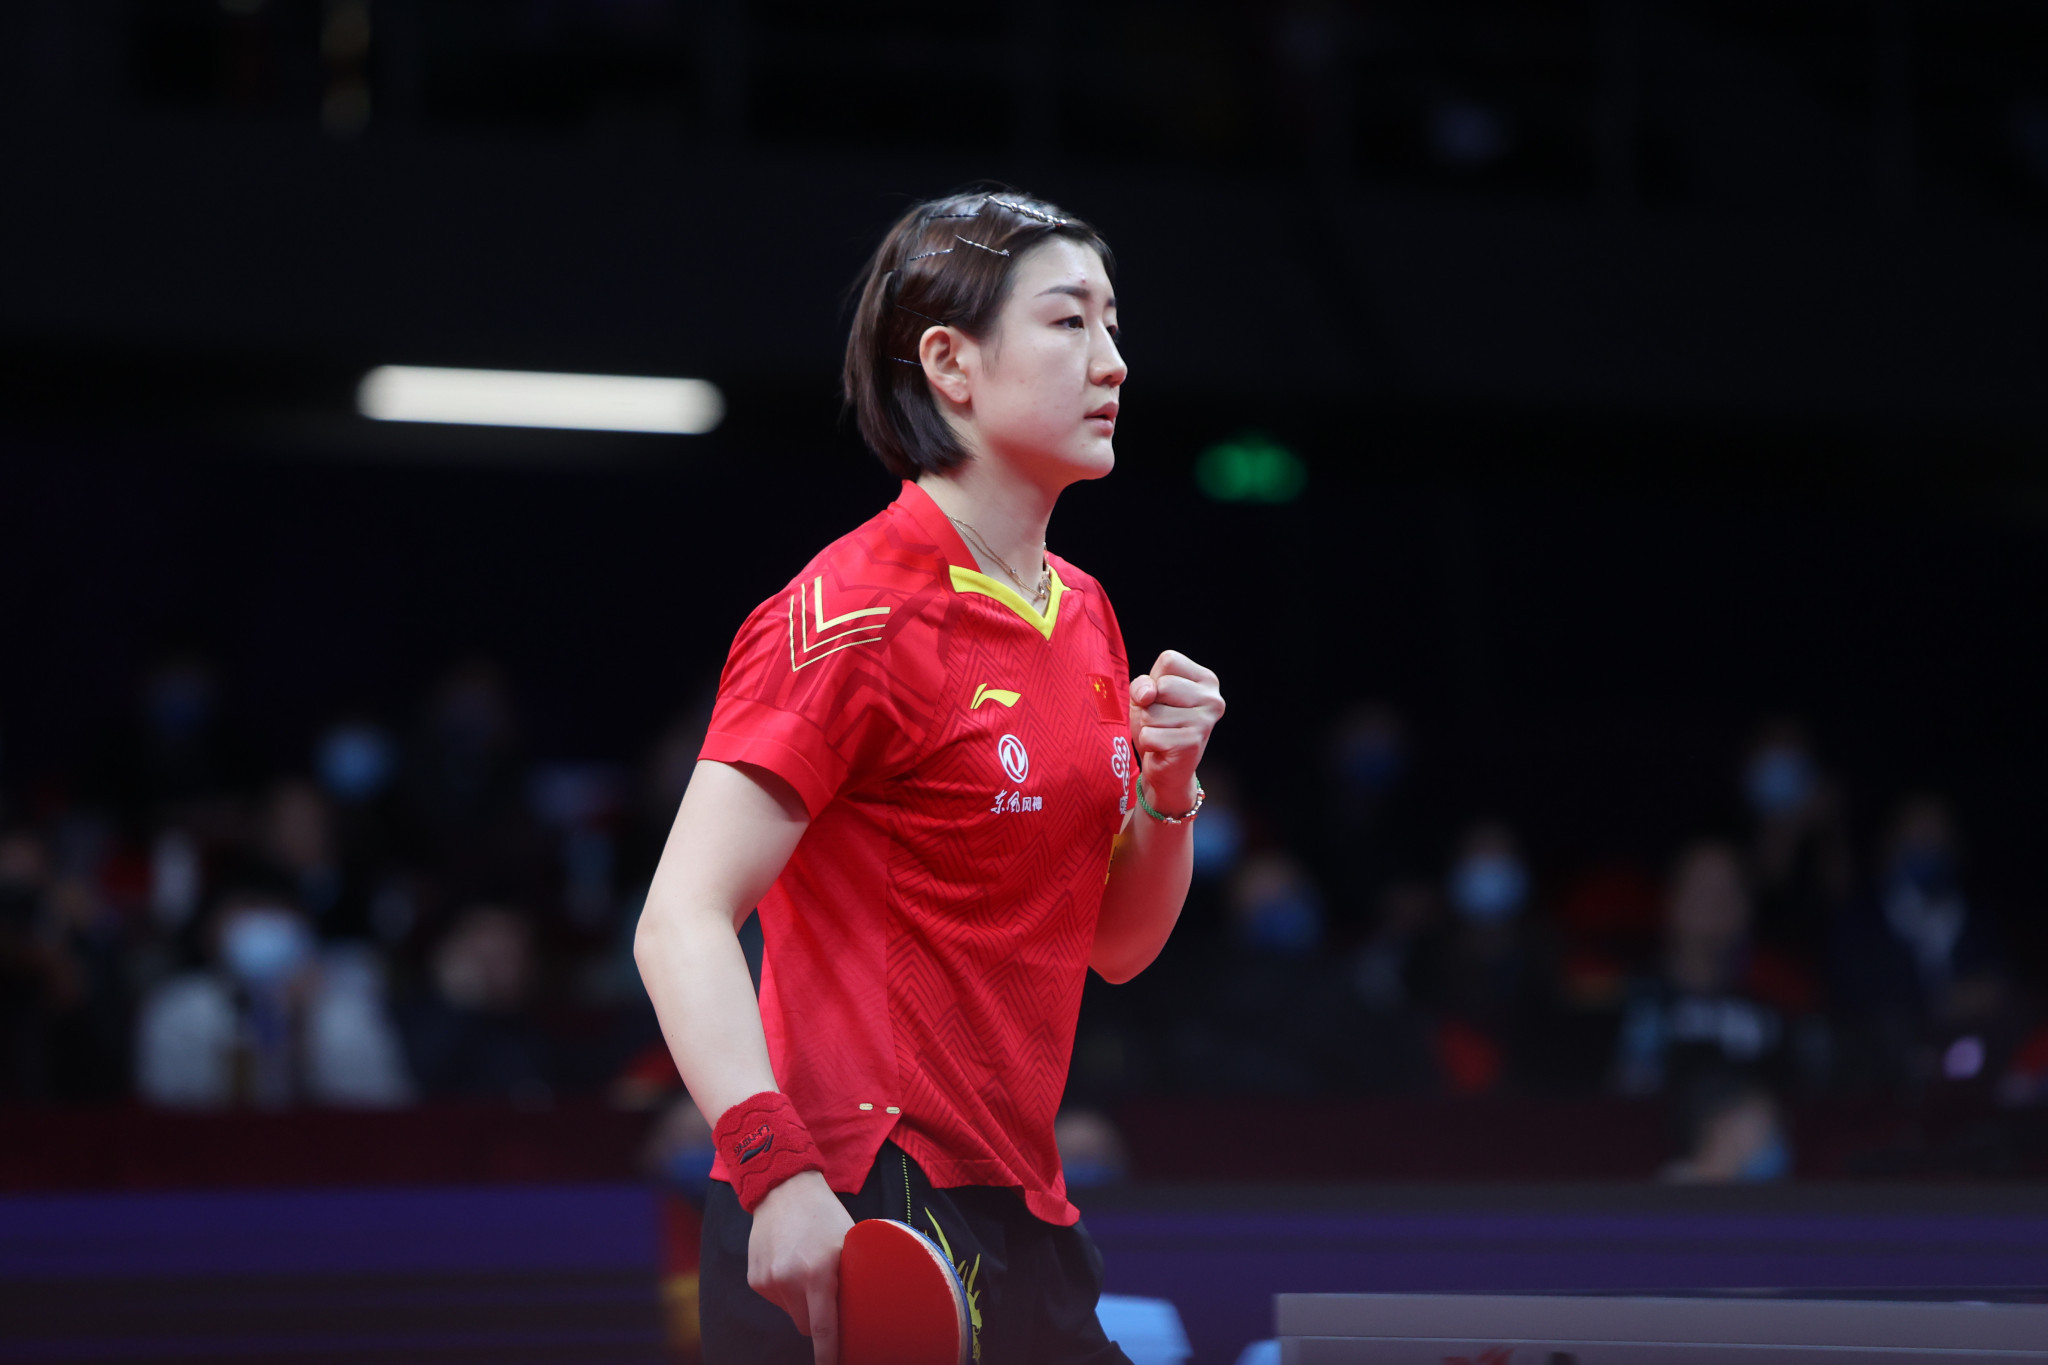 Defending champion Chen recovers from slow start to reach ITTF Finals last four